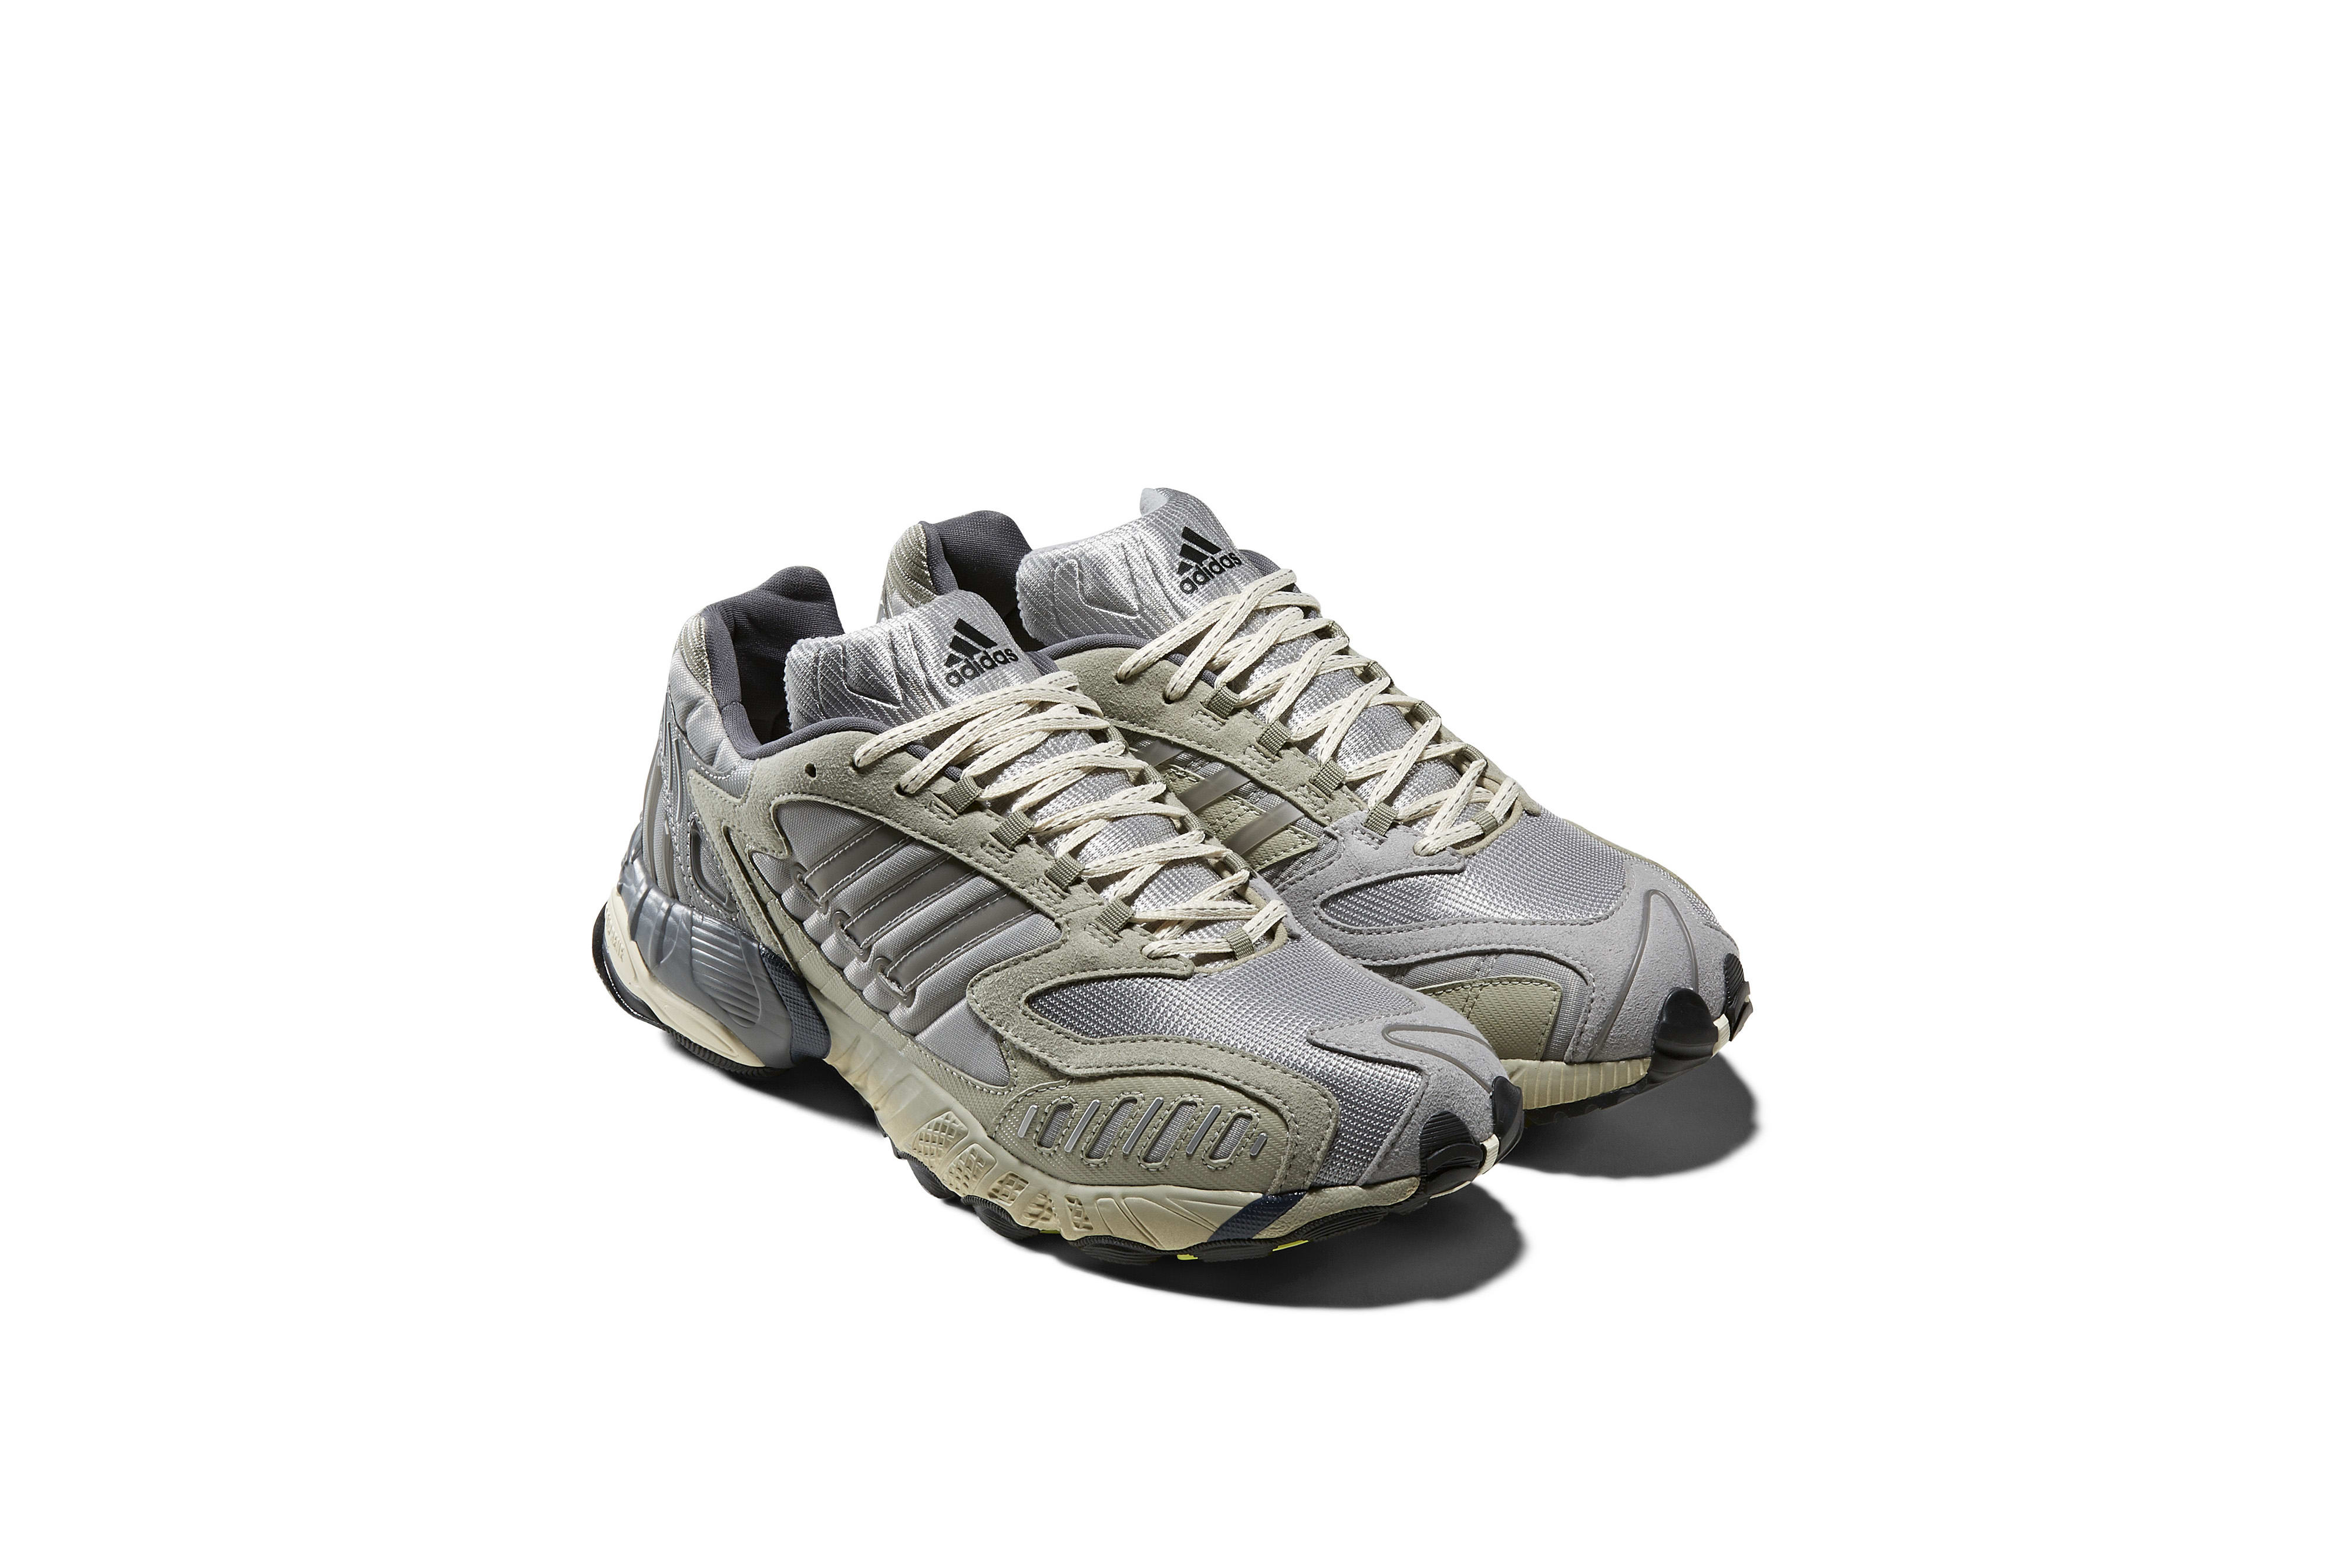 adidas x Norse Projects Torsion TRDC - EF7666